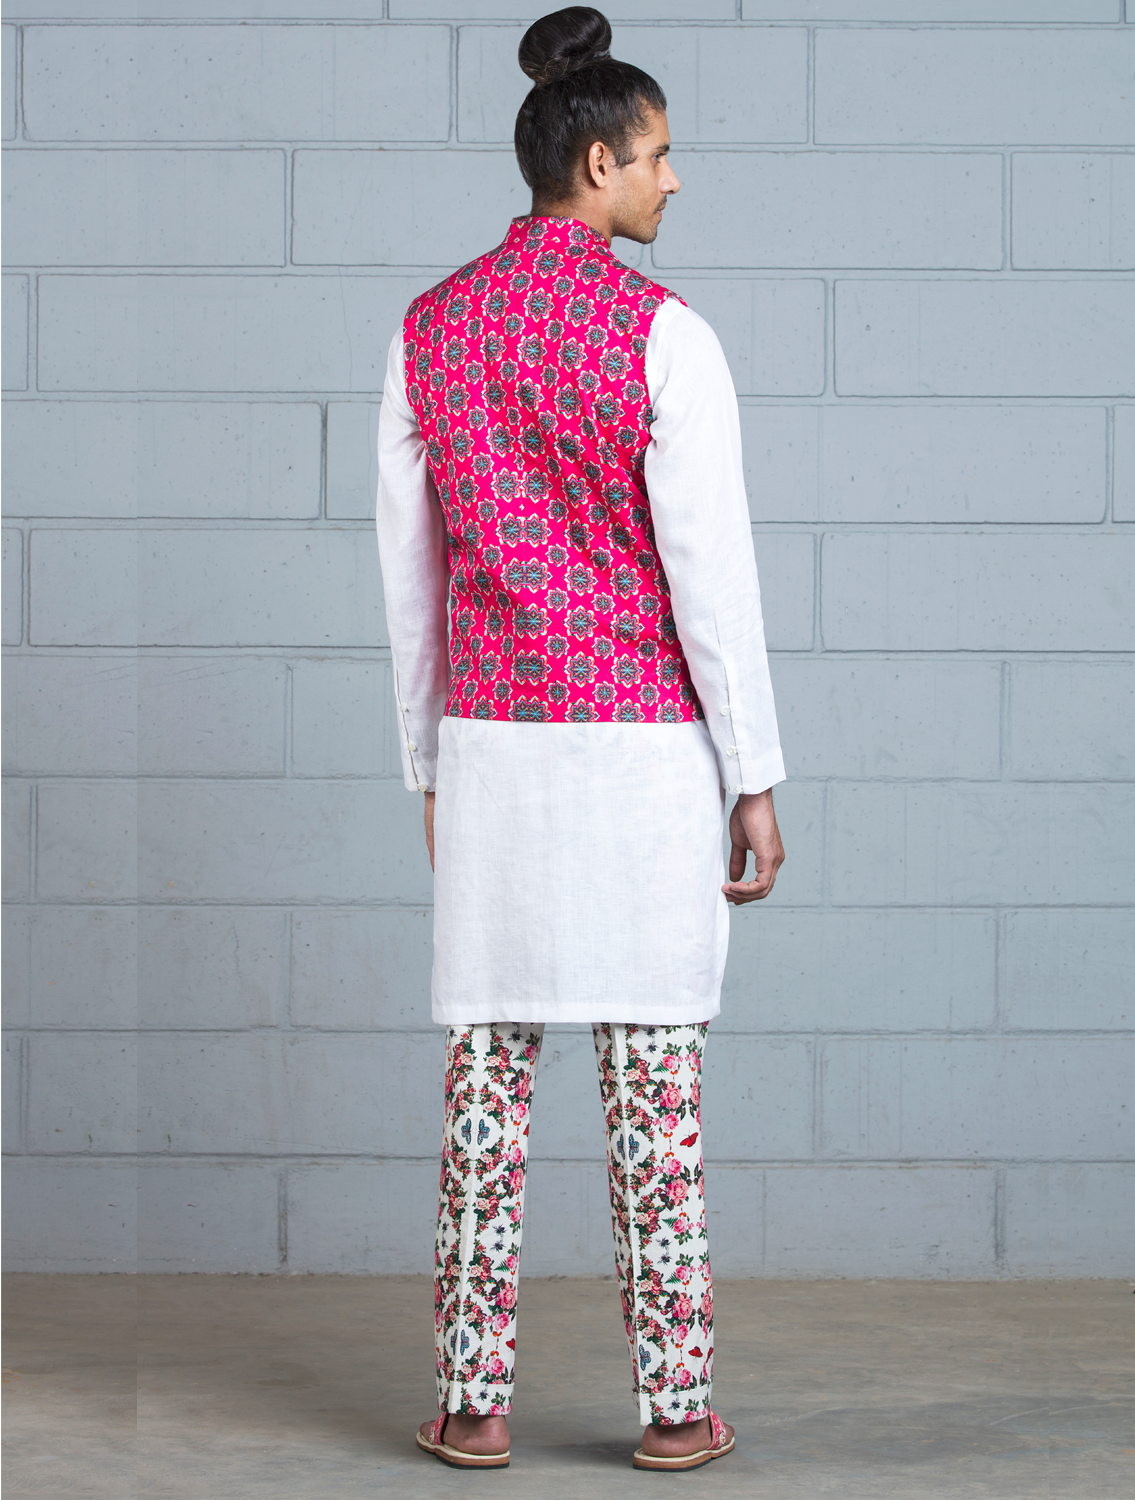 Kriyam Bib Style Shirt and Printed Pant Set